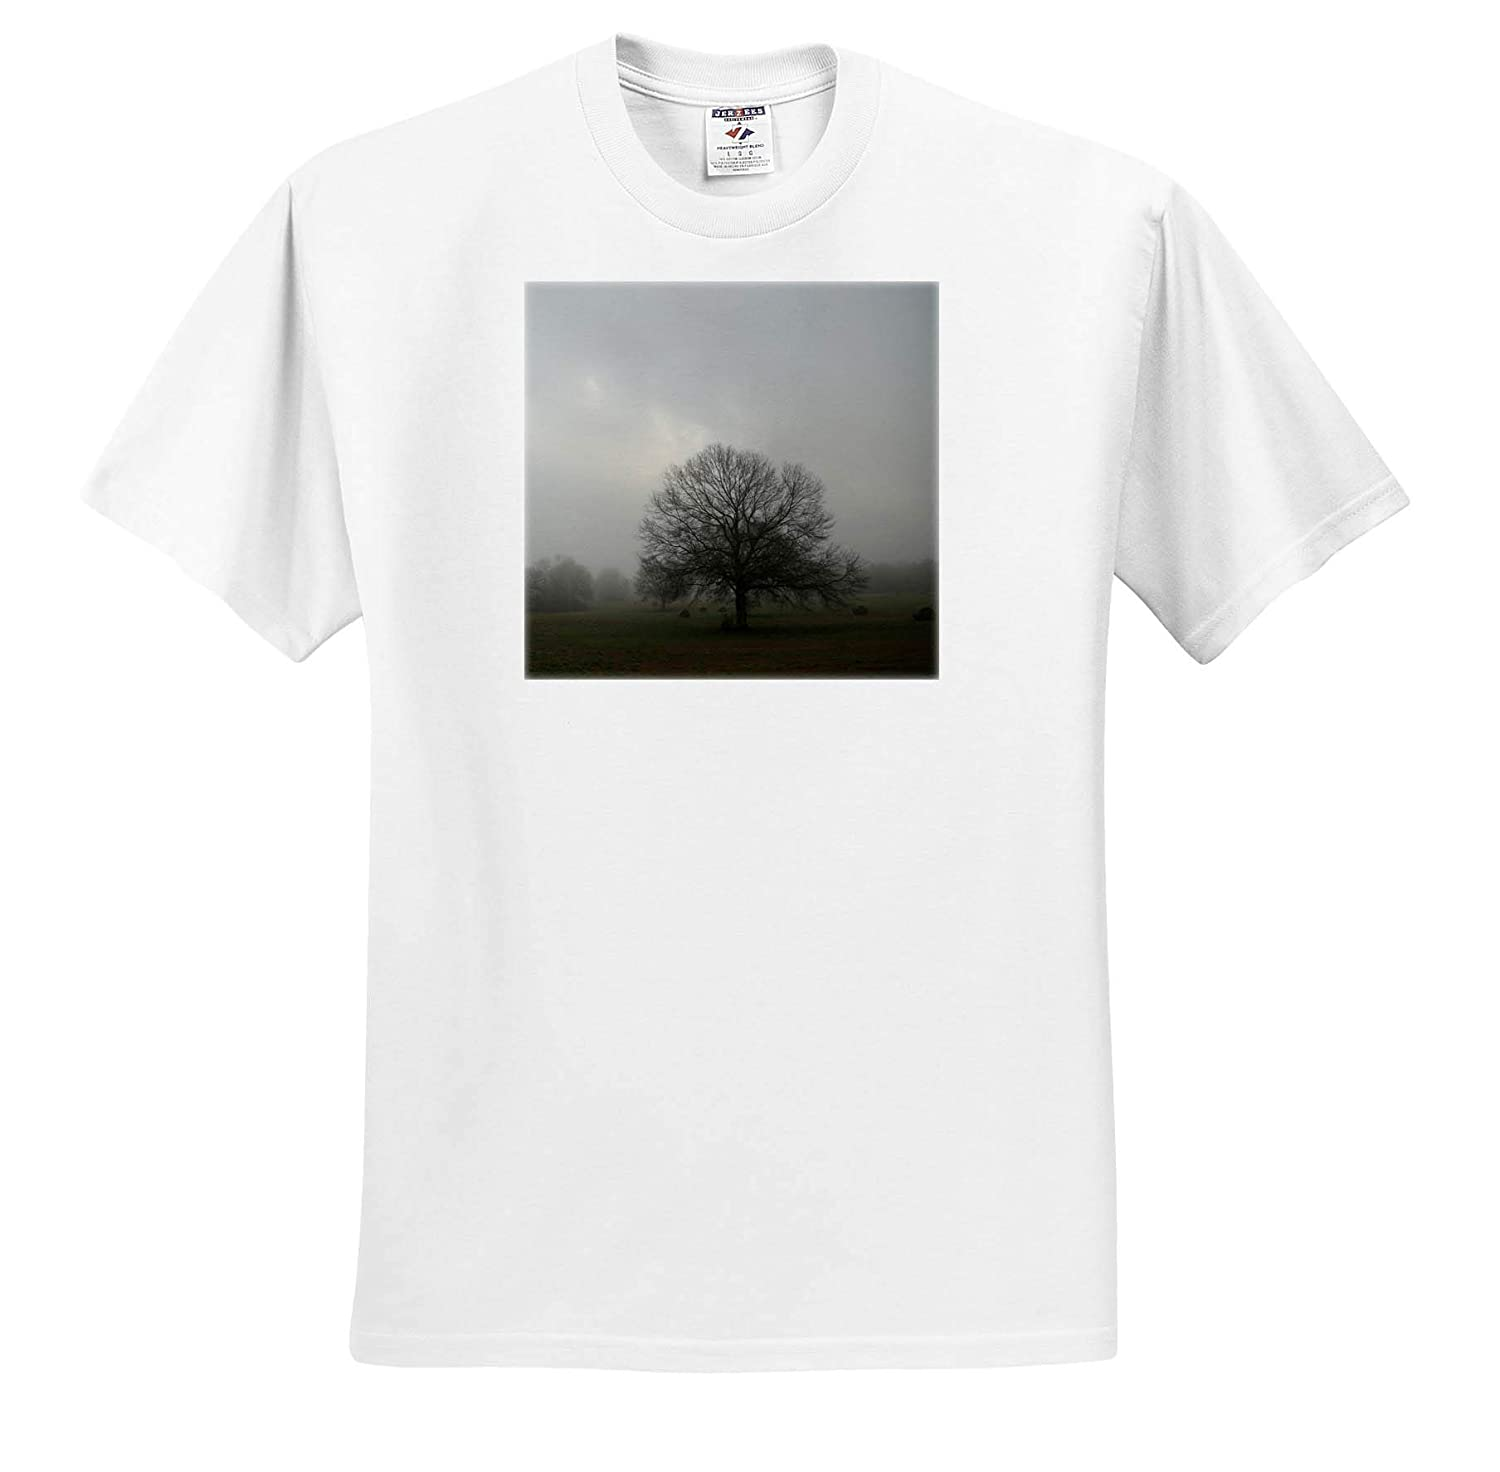 Landscape 3dRose Stamp City - T-Shirts Photograph of a Large Oak and hay Bales on a Foggy Morning in a Field